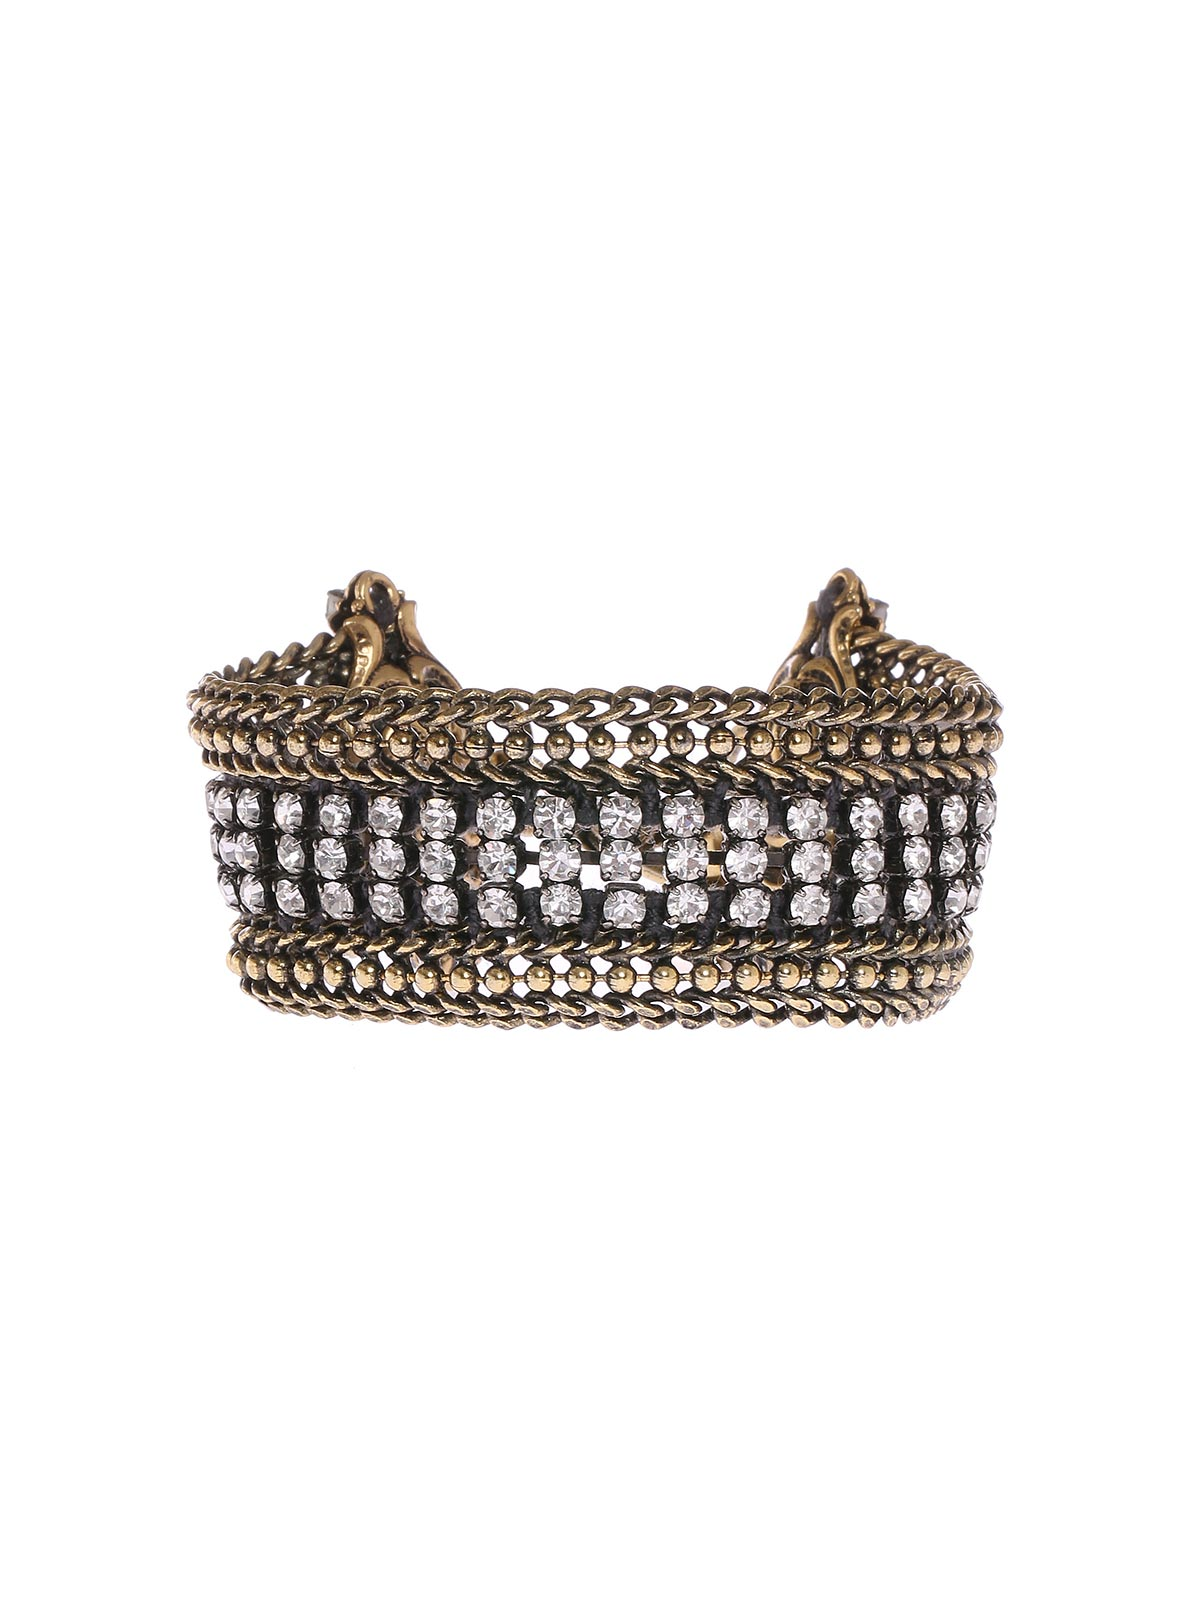 Brass chain bracelet with crystals